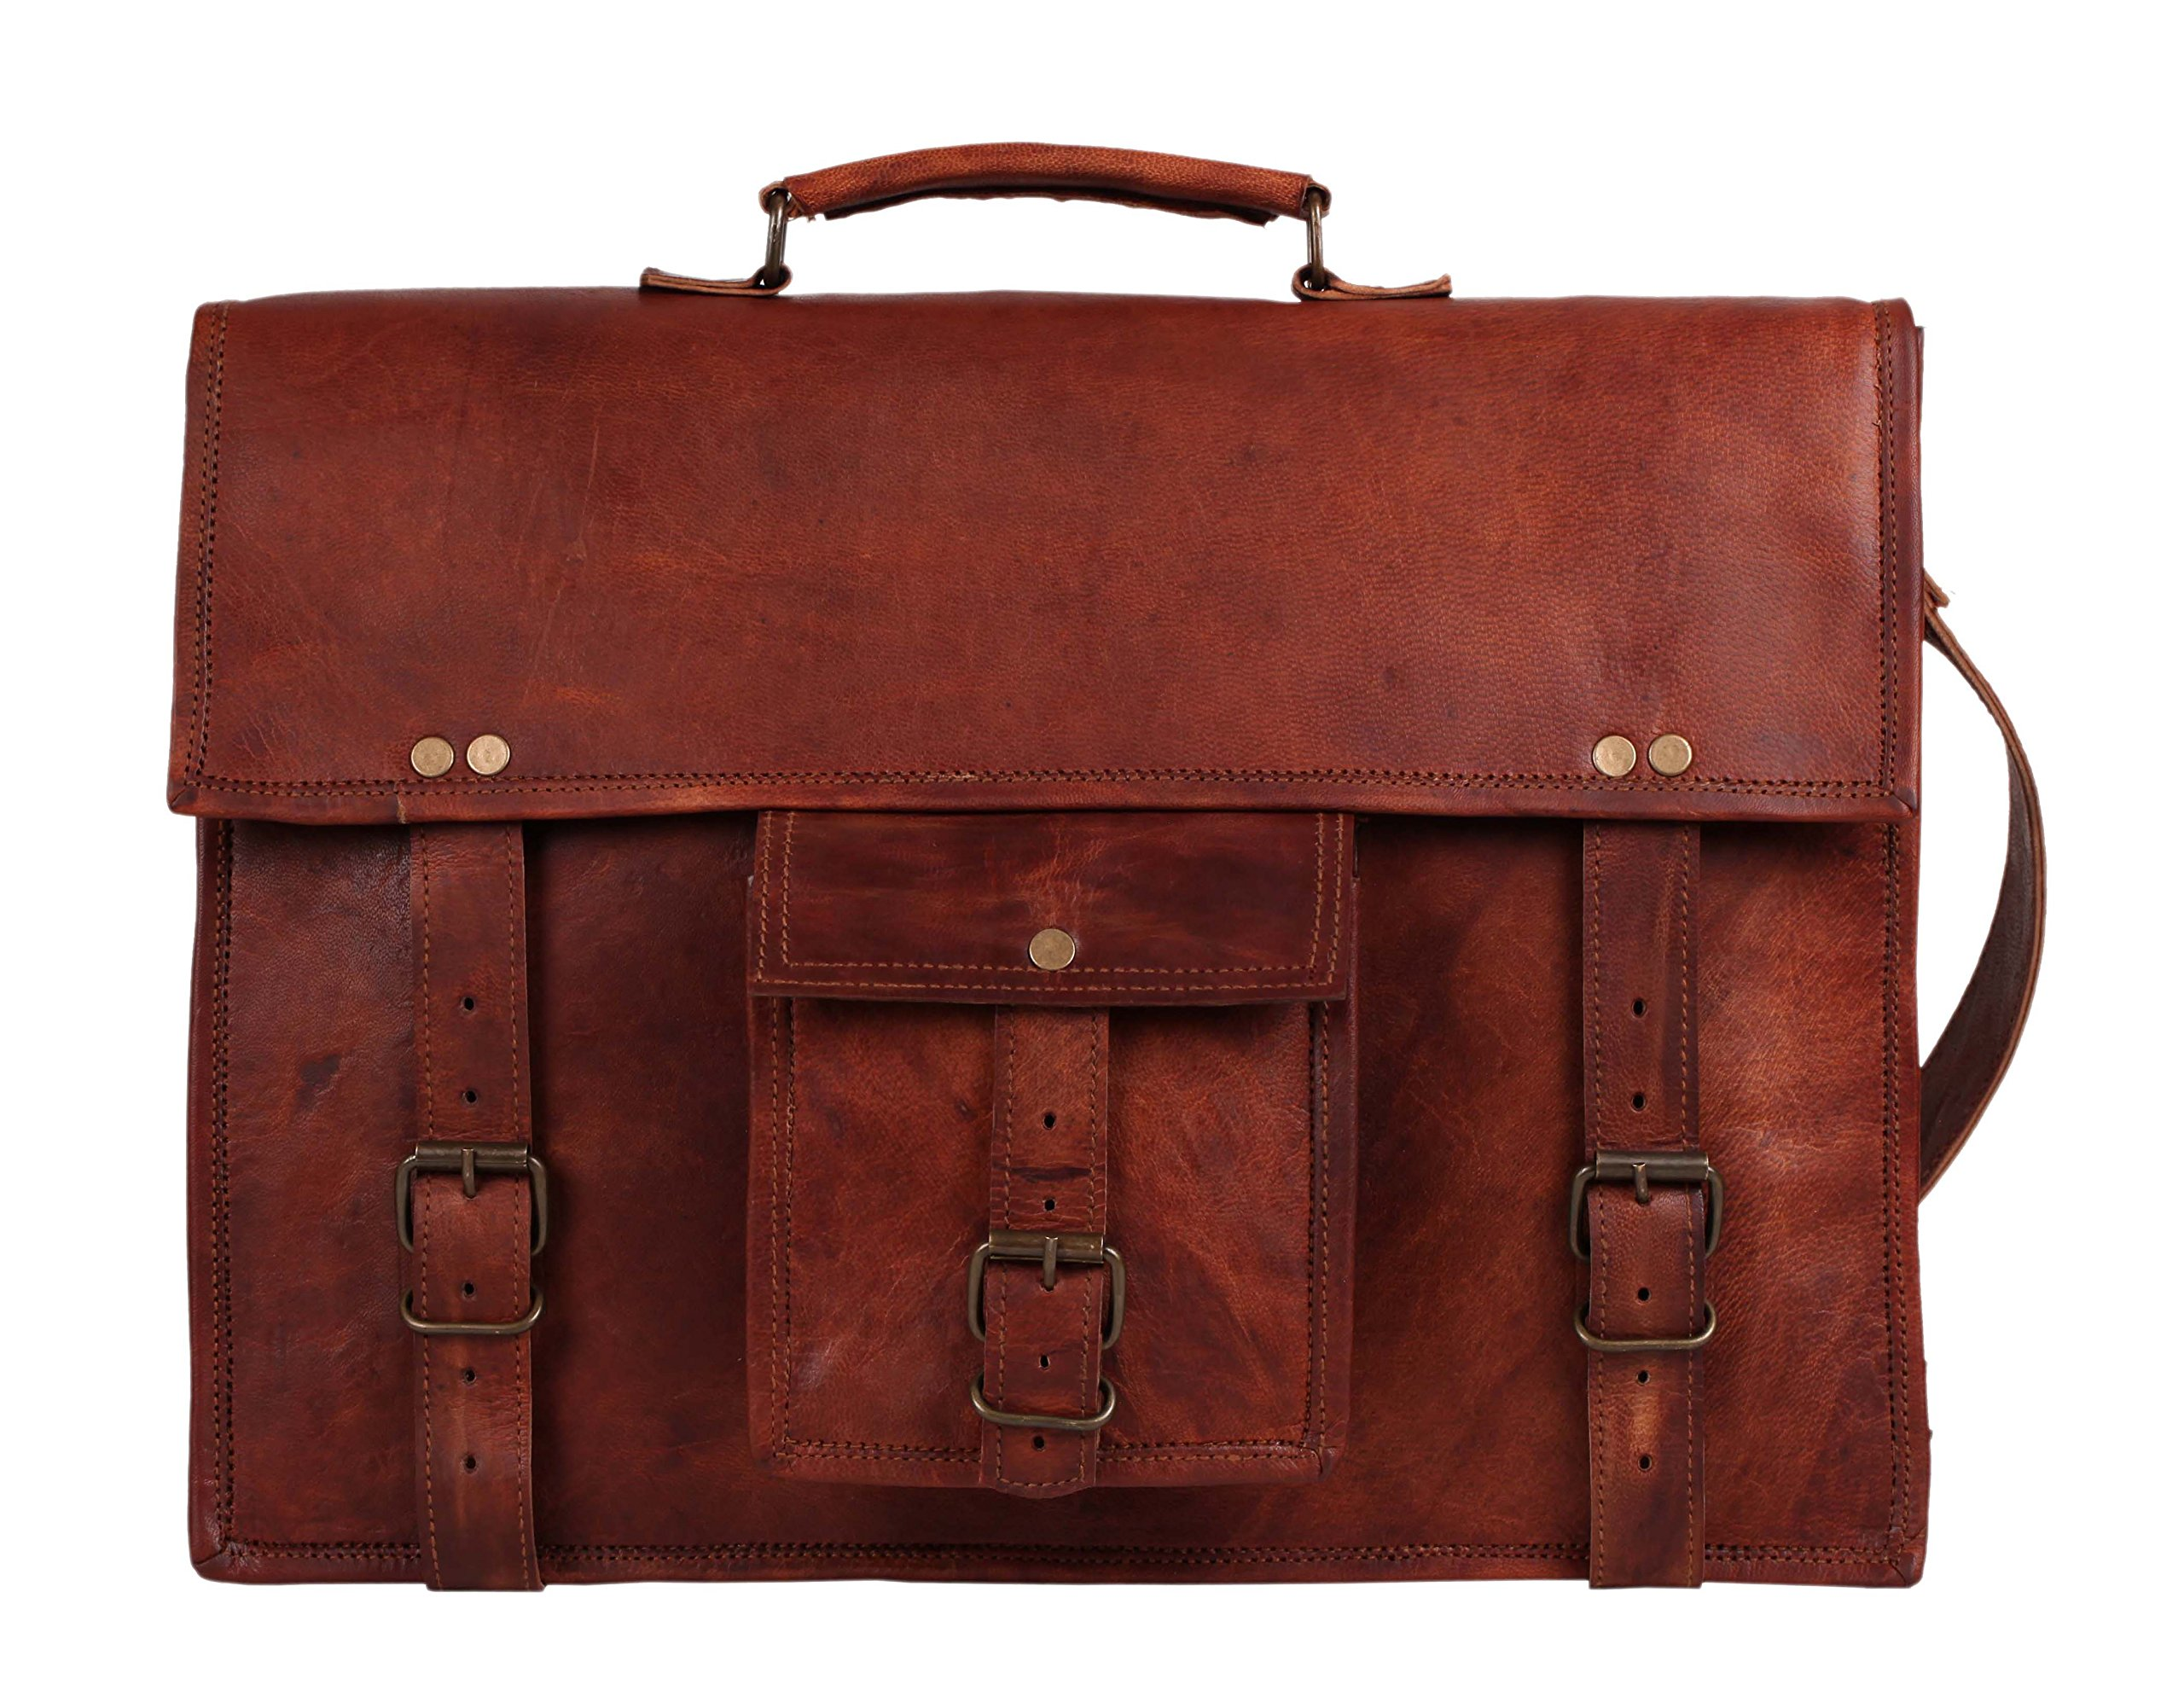 18 inch Genuine Leather Messenger Bag - Crossbody Laptop Satchel by Rustic Town